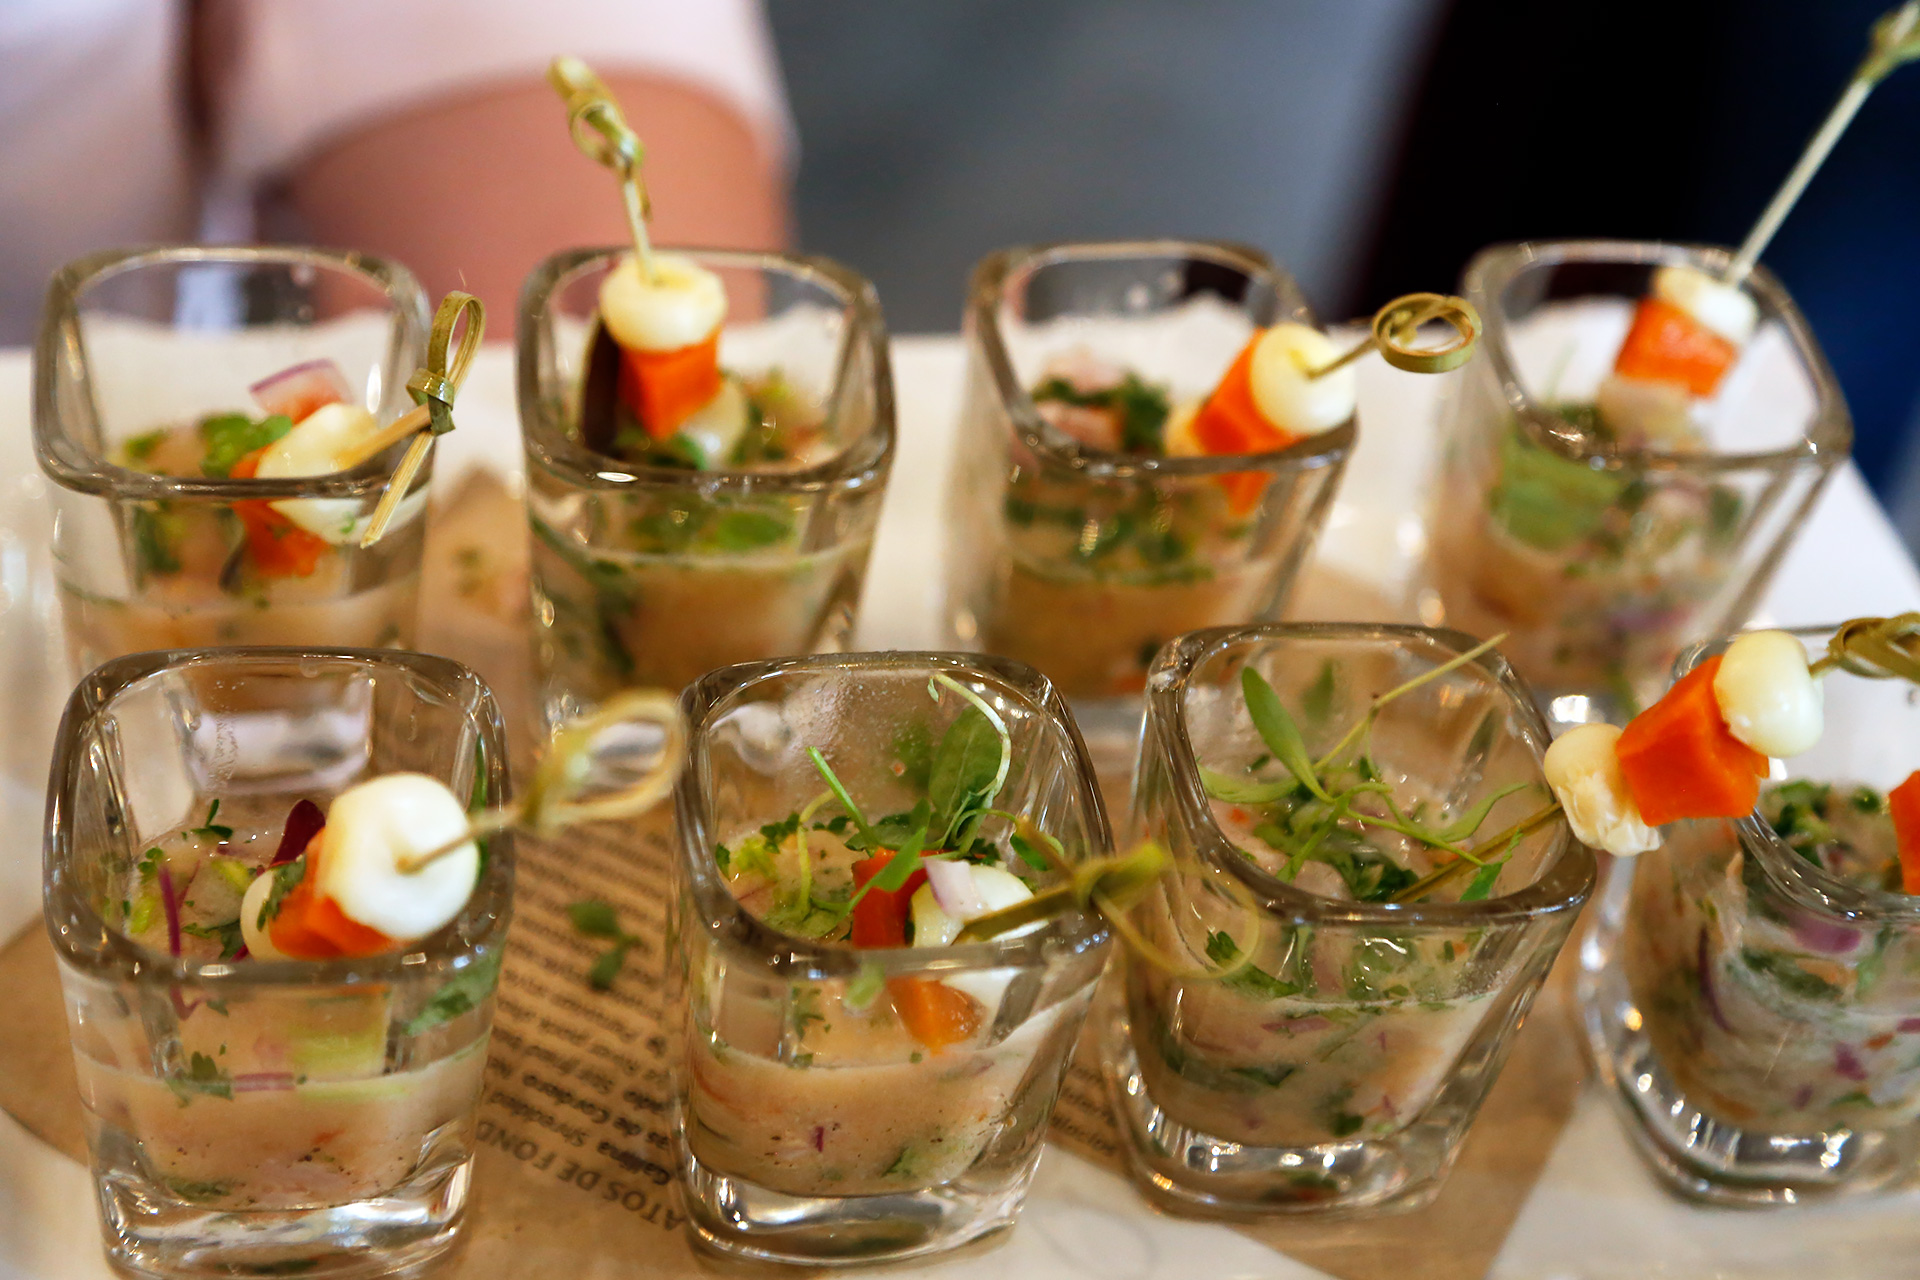 Cebiche presented in a shot glass